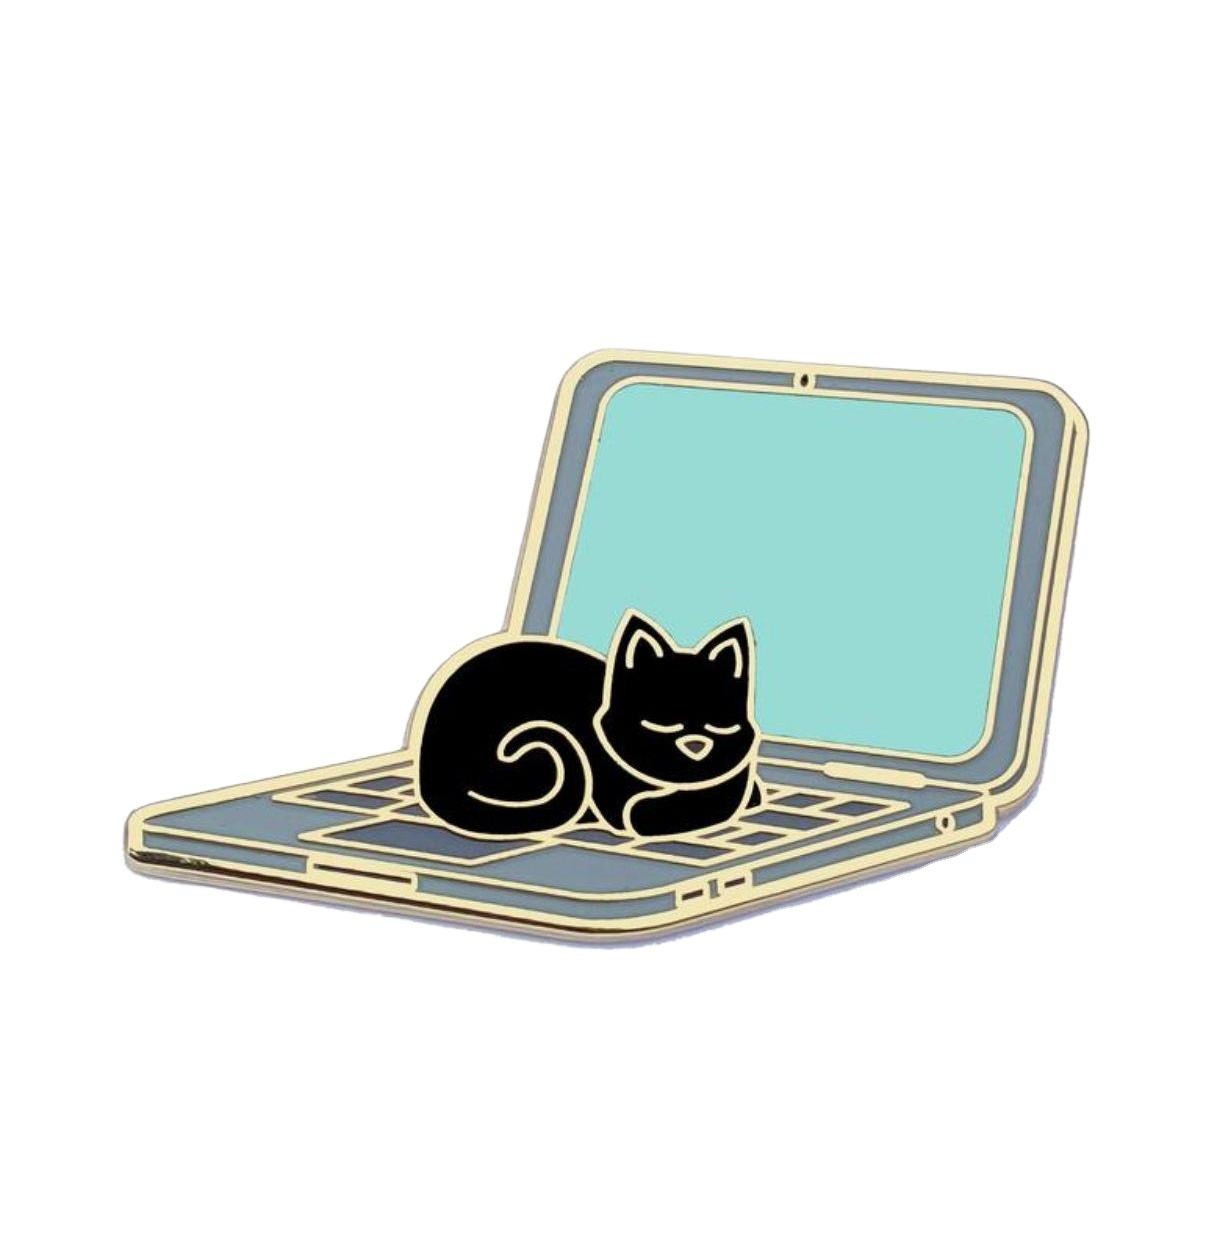 Creative design custom fold computer lapel pin badge metal interactive keyboard Cat Sleeping on laptop enamel pin